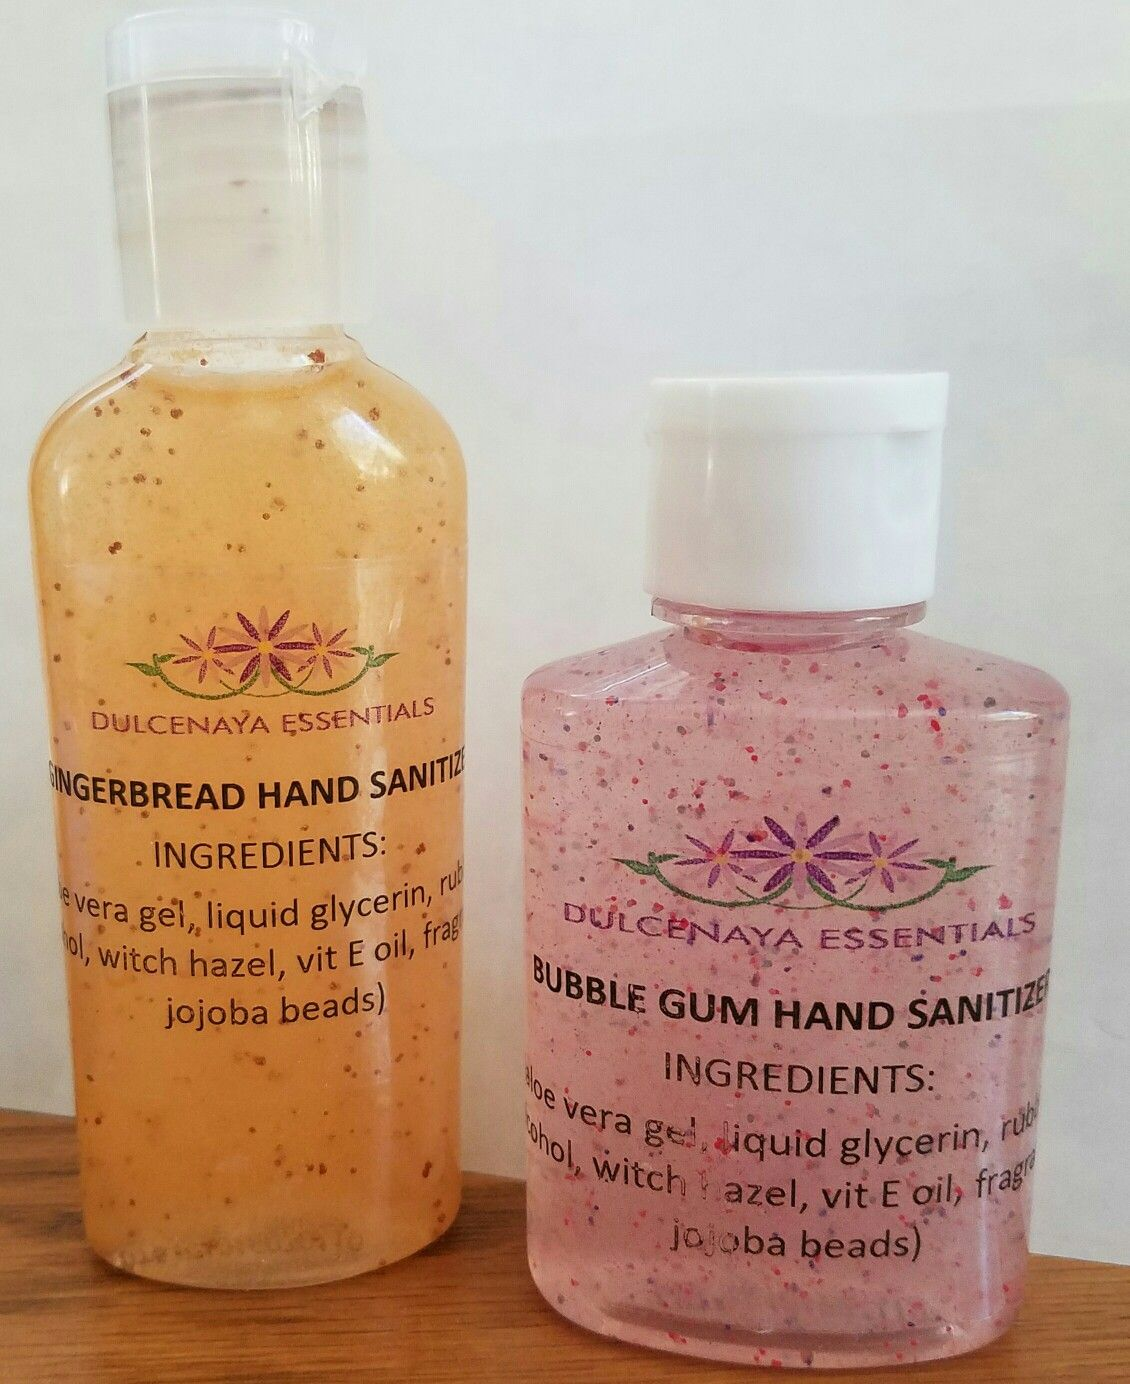 Hand Sanitizer Hand Sanitizer Sanitizer Shampoo Bottle